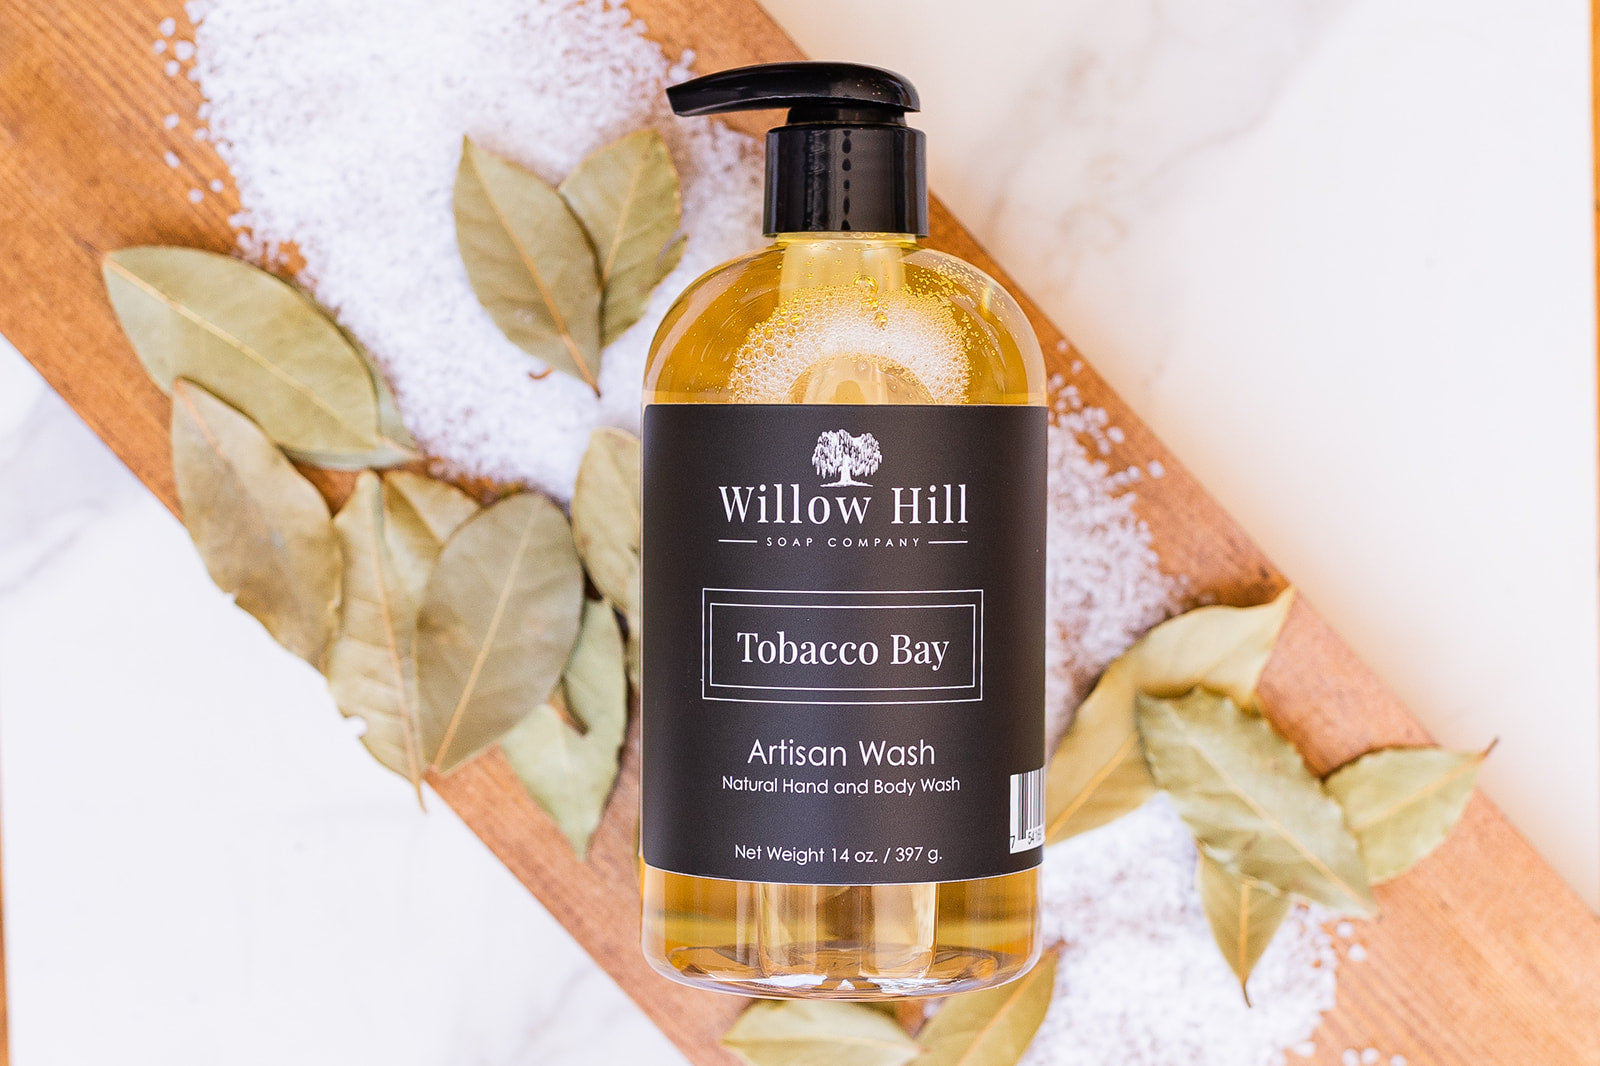 Tobacco Bay Artisan Wash